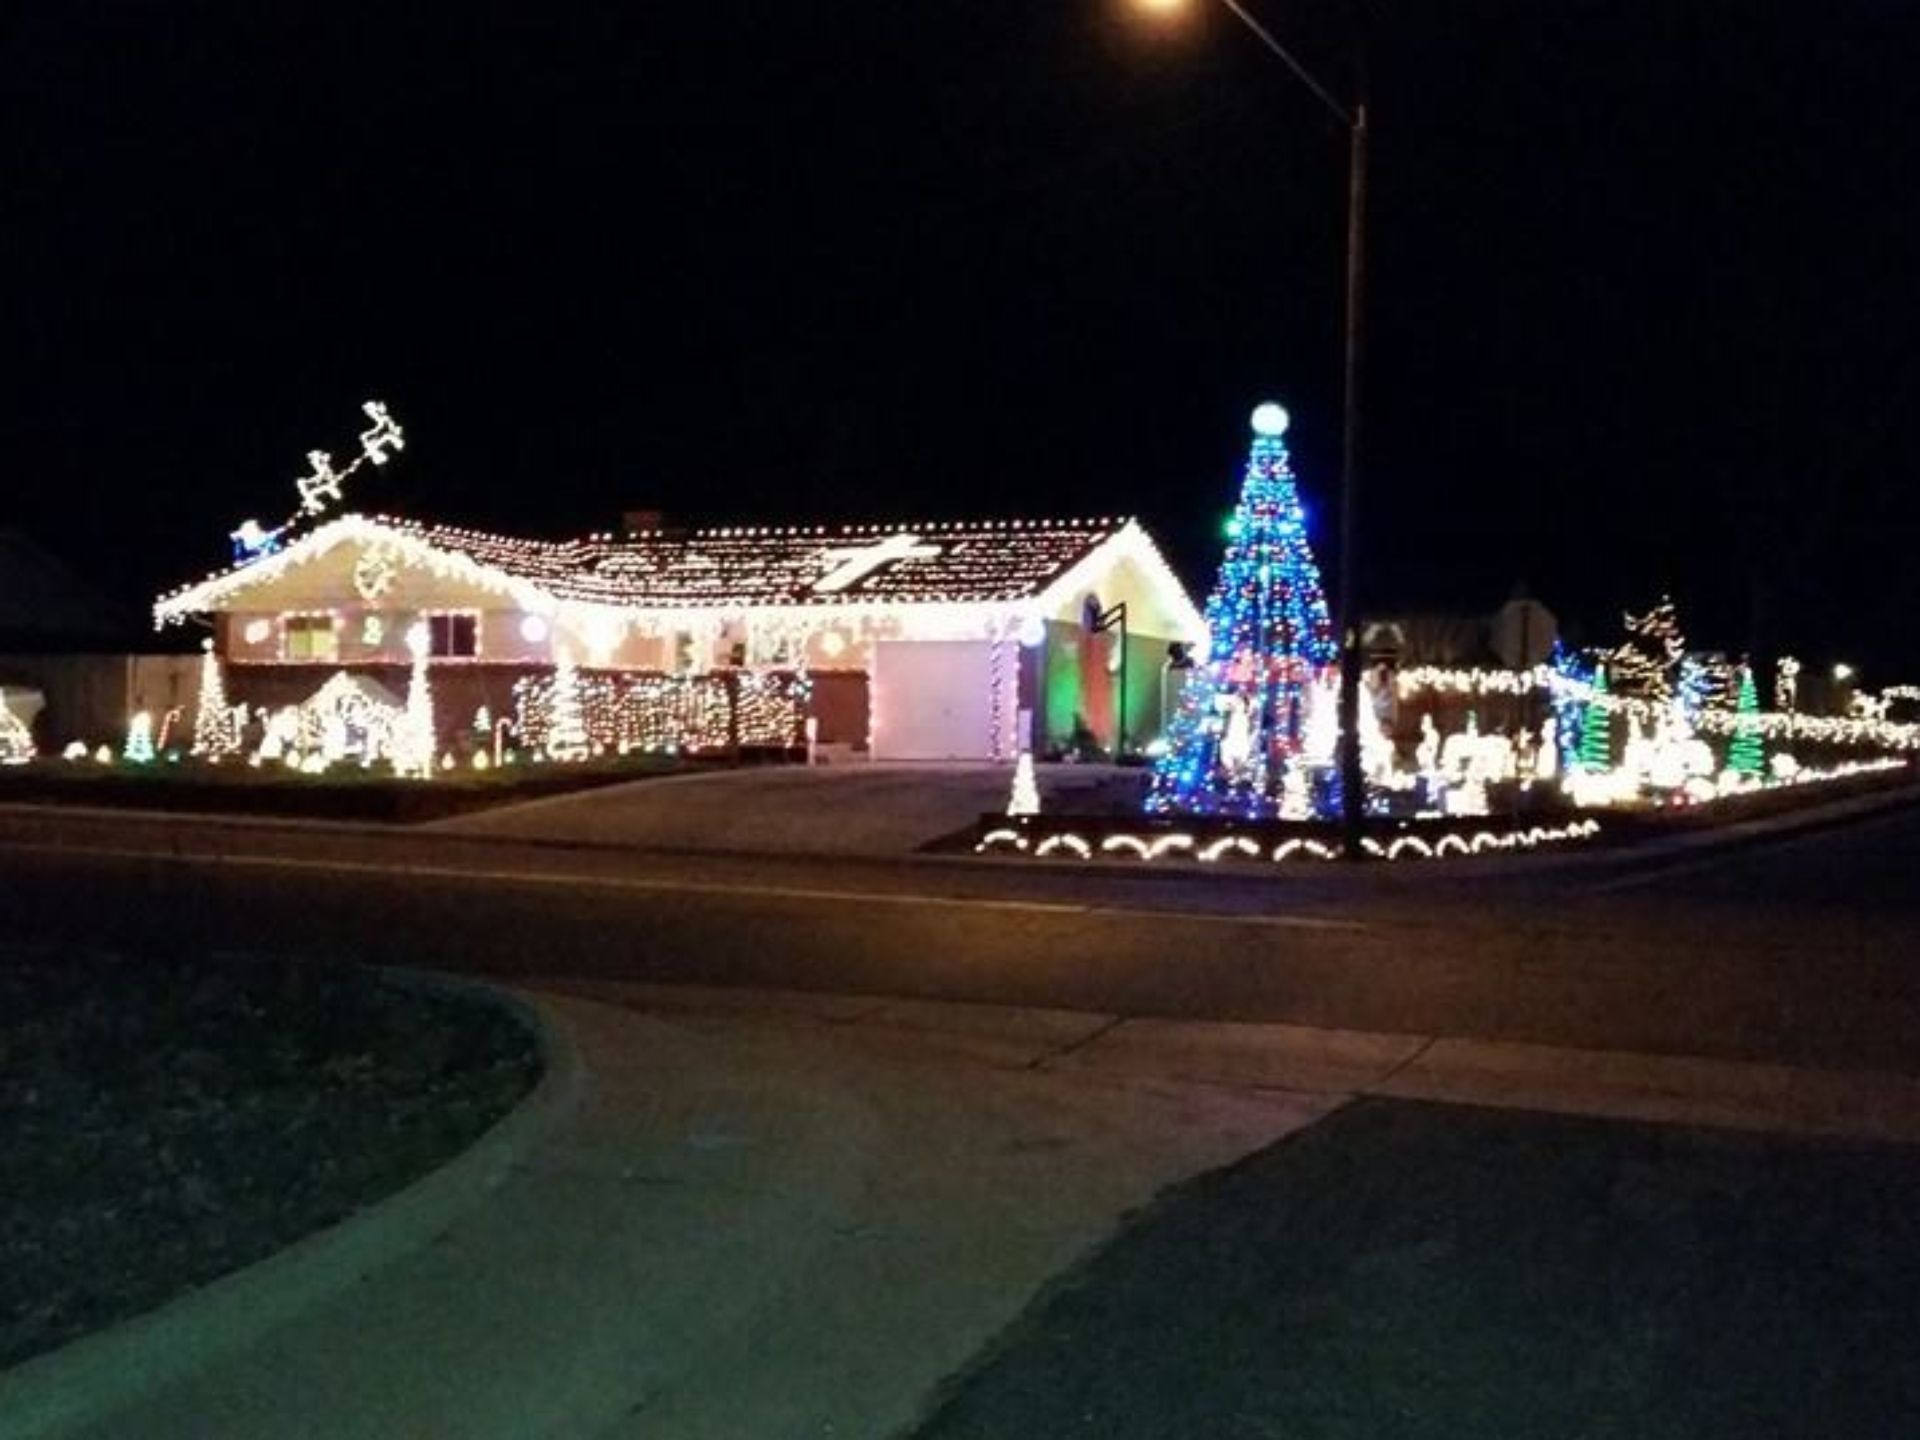 A beautiful and classy light display that wraps around